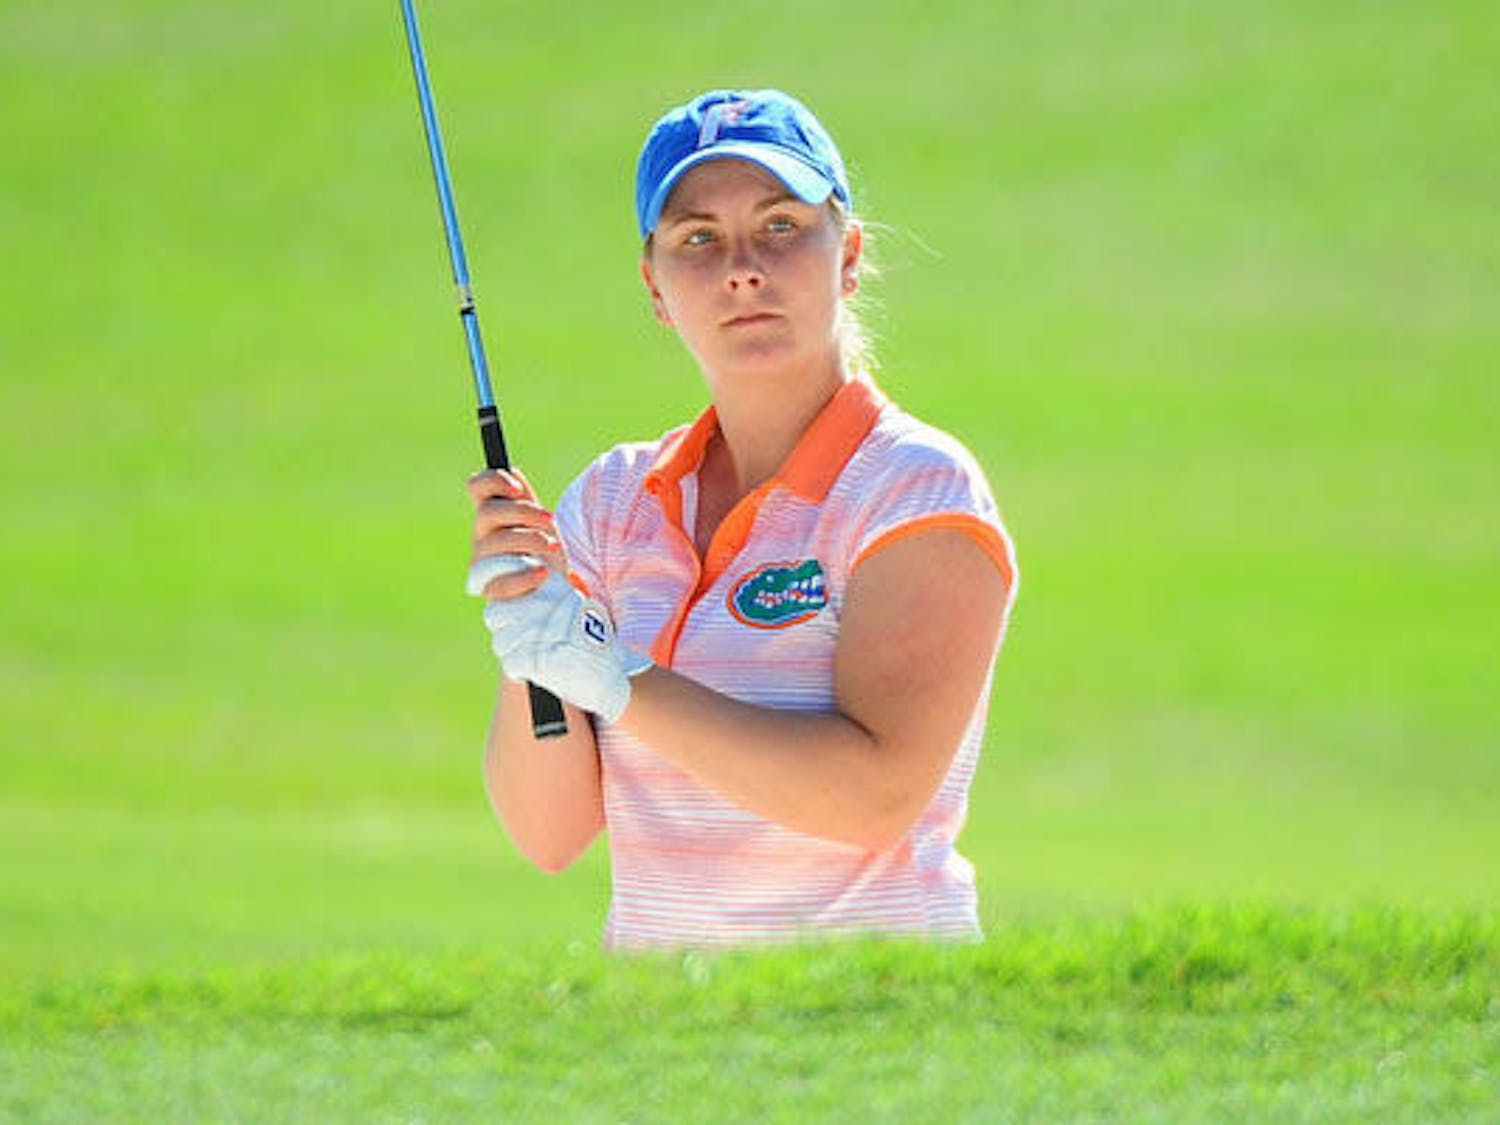 Senior Taylor Tomlinson led UF women's golf with an even par performance in the second round of the National Championship in Stillwater, Oklahoma. However, UF dropped three places to 13th and shot 15 over for the round.